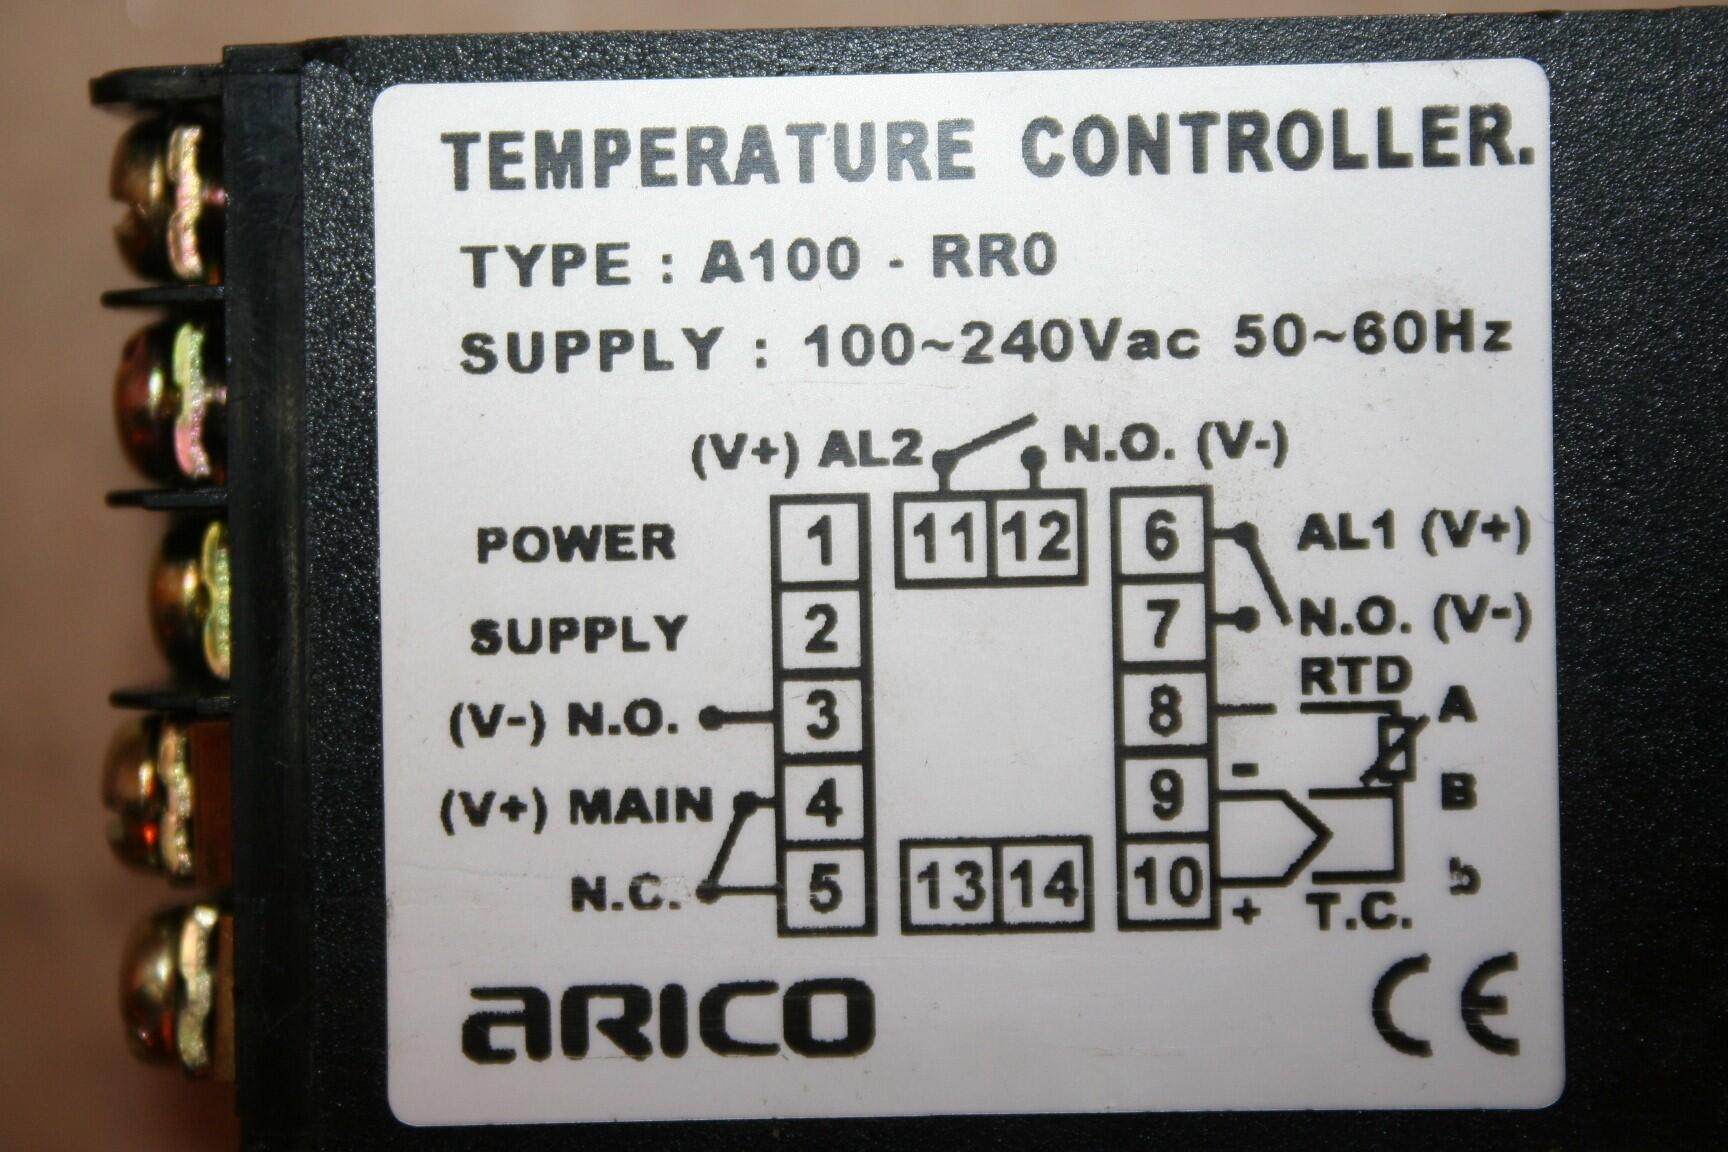 Arico Temperature Controller Type A100 RPO Used #18244 eBay #63432D